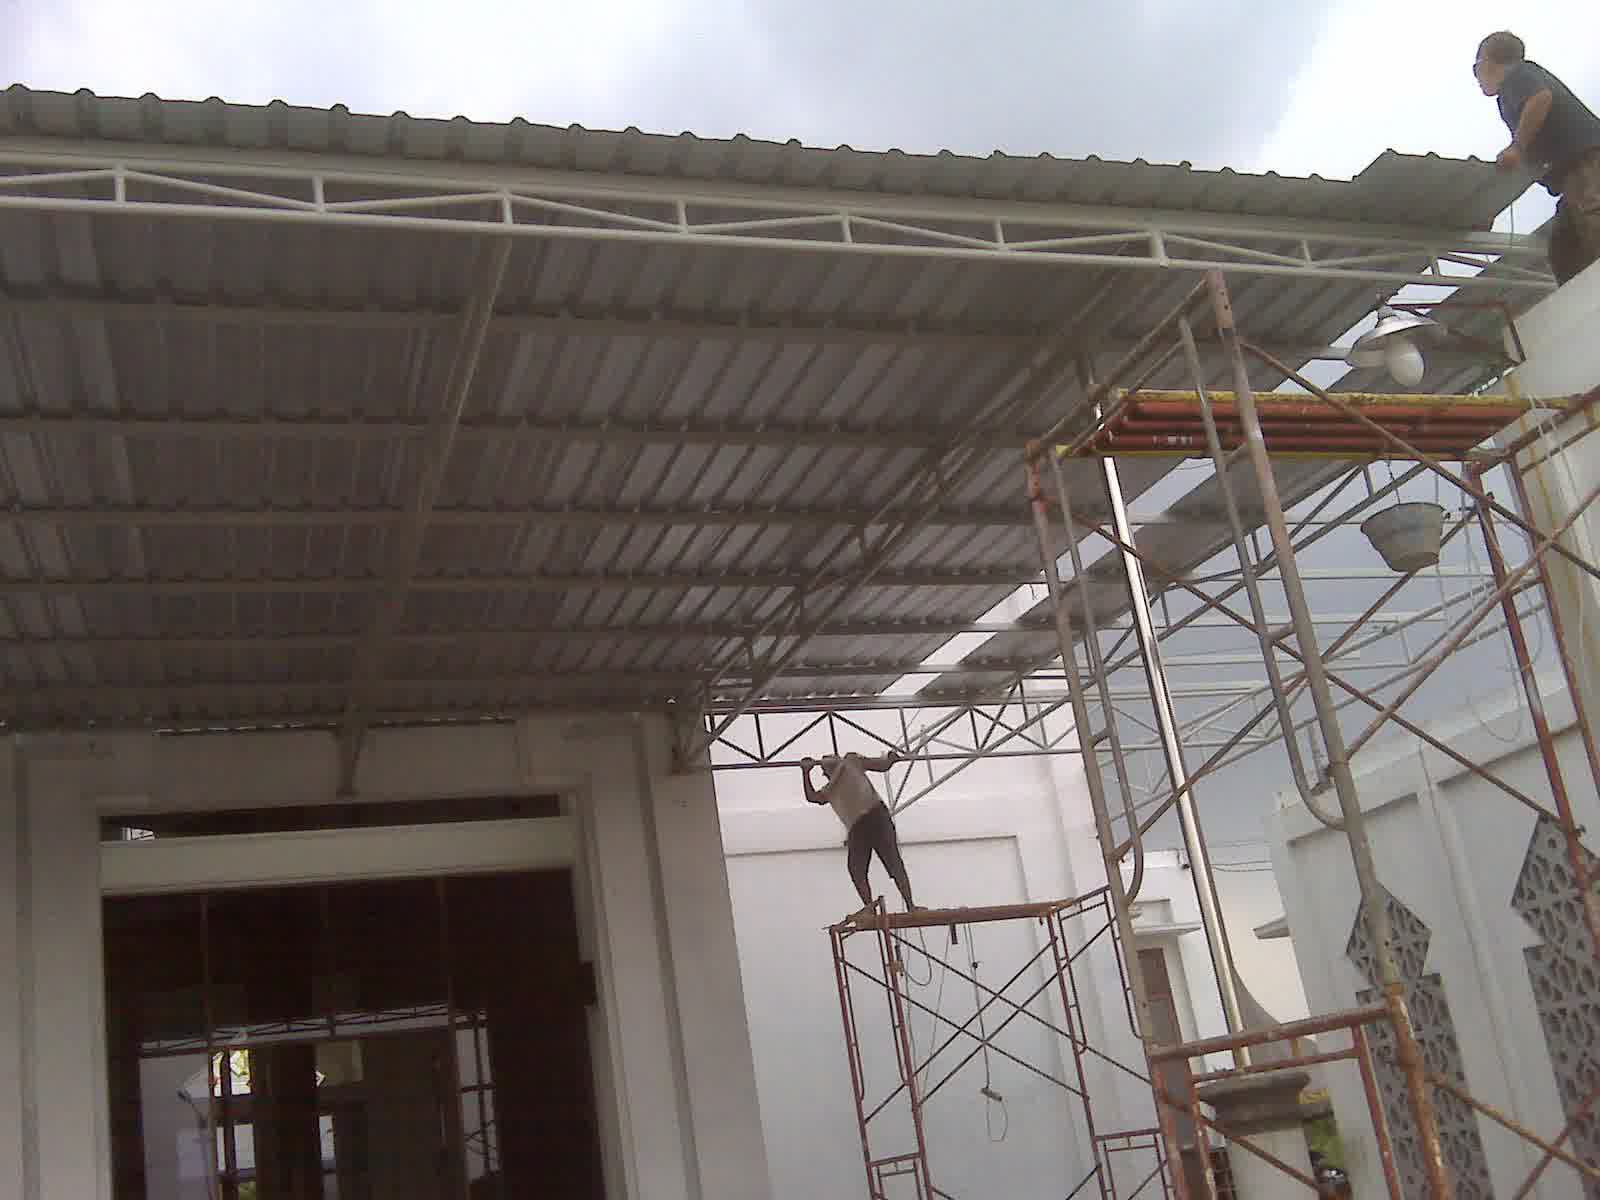 Pasang Canopy Sidoarjo Canopy Besi Kanopi Stainless Canopy